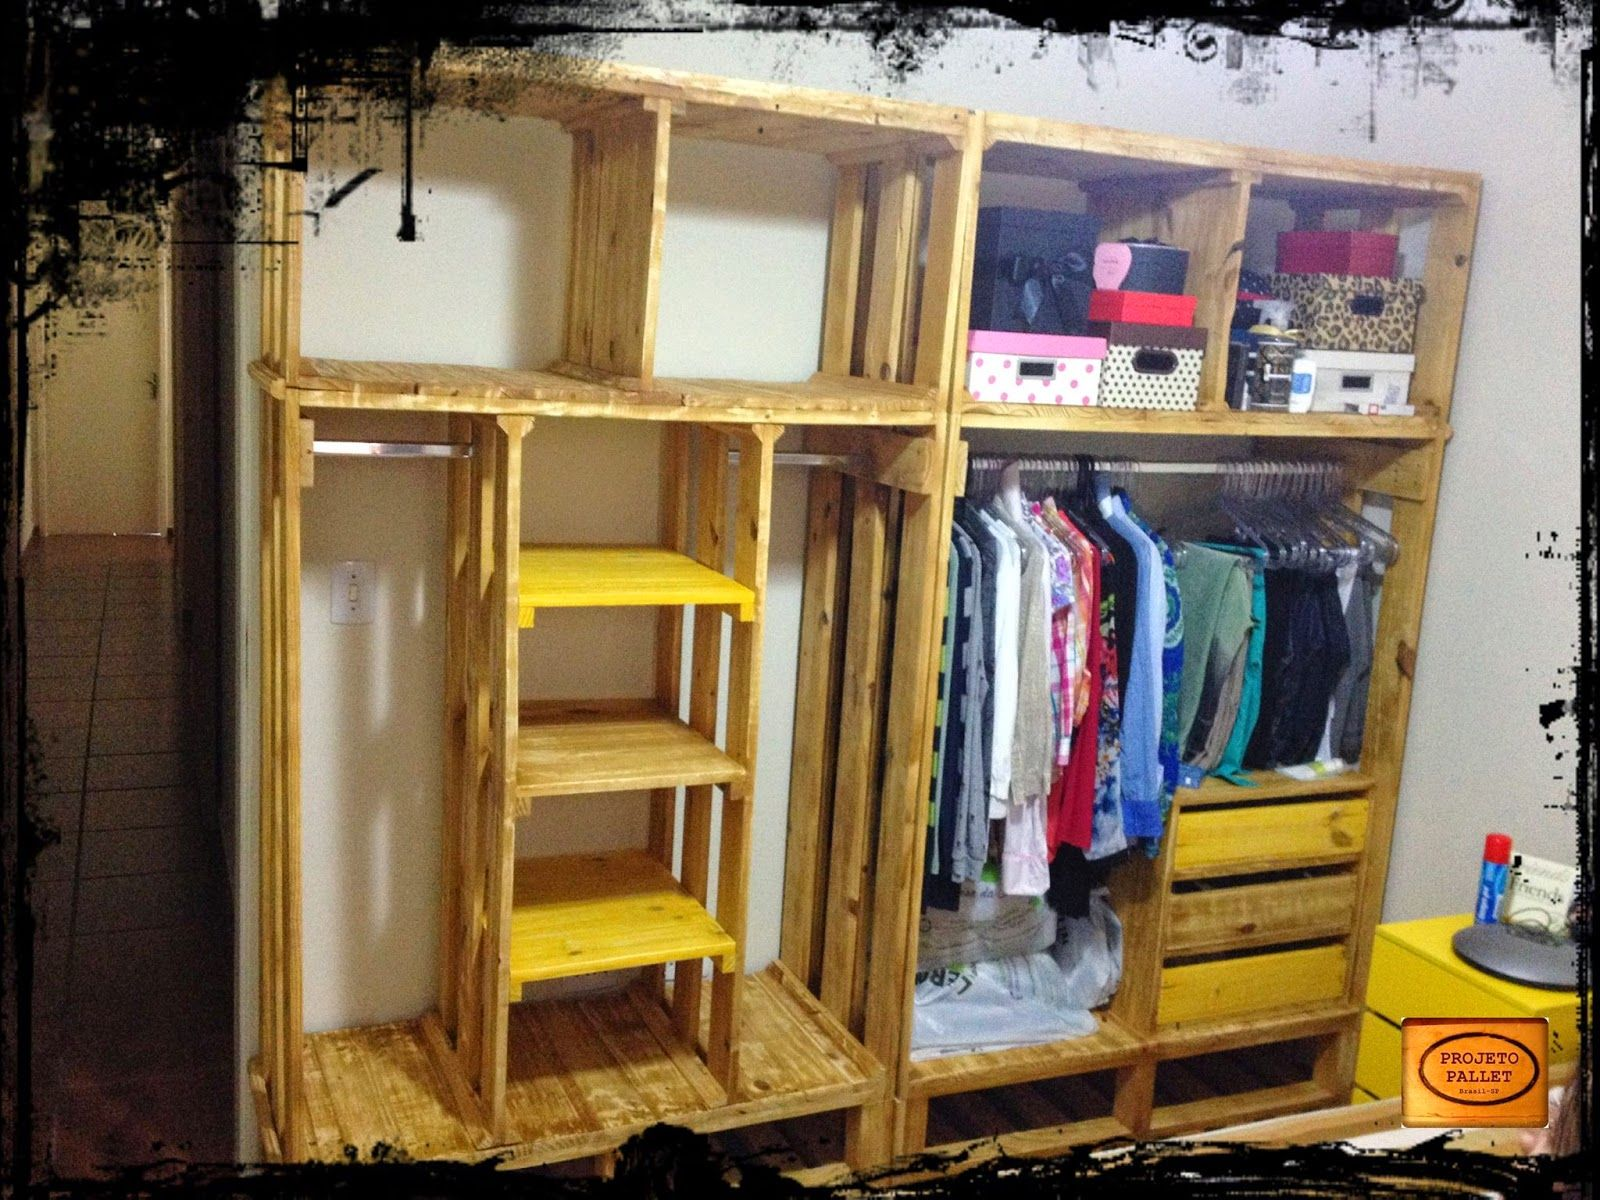 Recycled Pallet Furniture Ideas, DIY Pallet Projects - 99 Pallets - Part 5